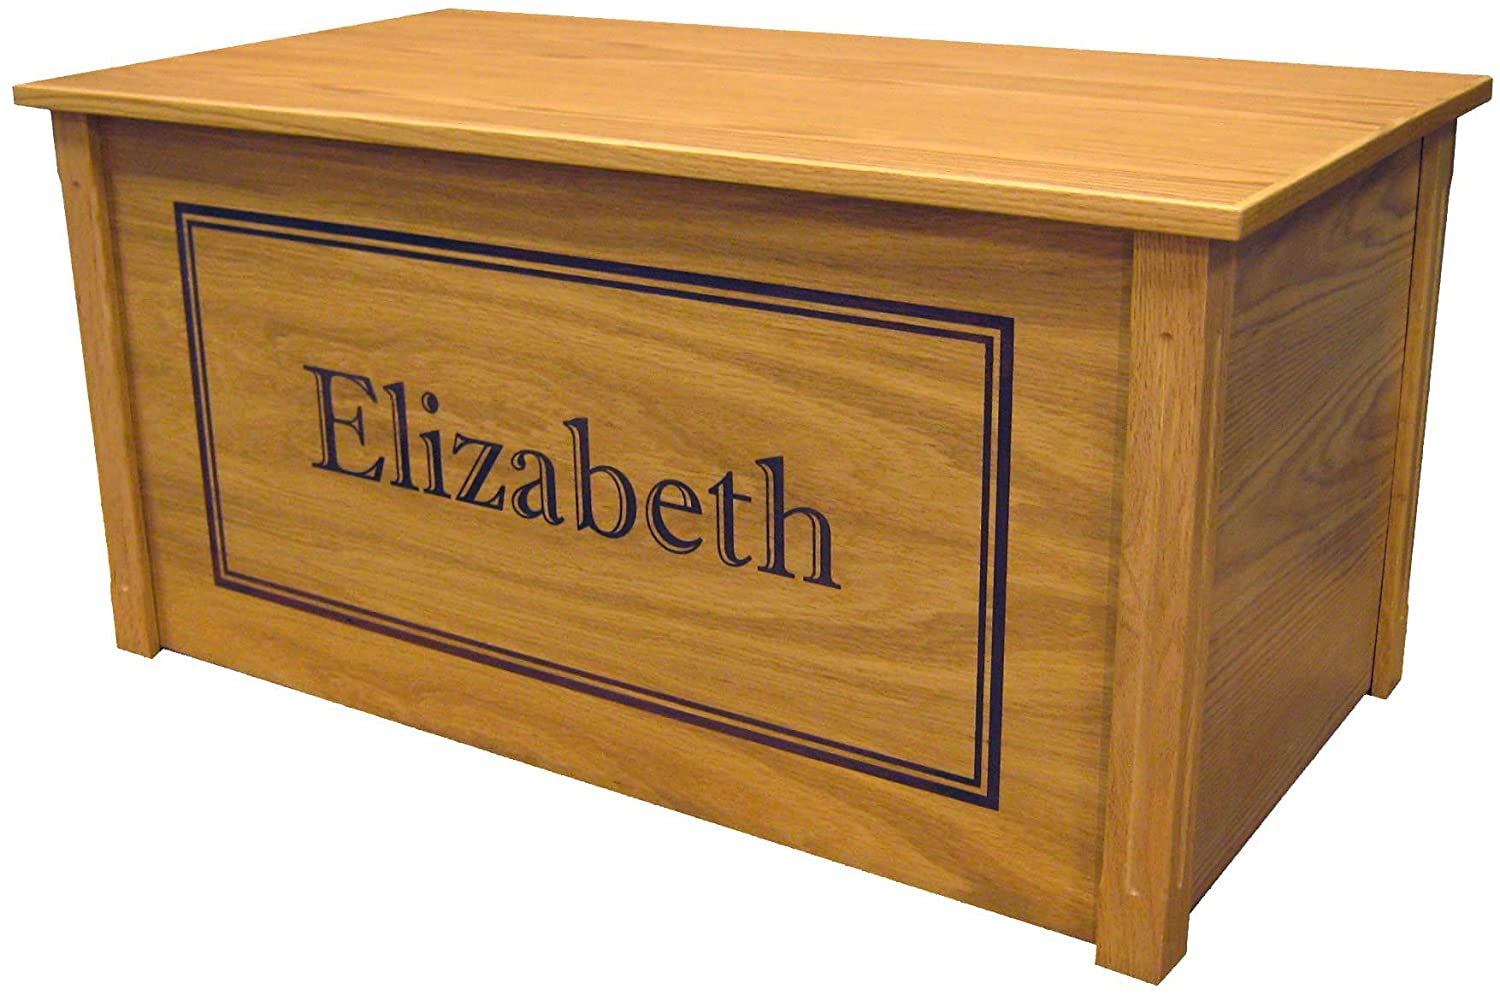 Wood Toy Box, Large Oak Toy Chest, Personalized Shadow Font, Custom Options (Standard Base) WTB-shadow